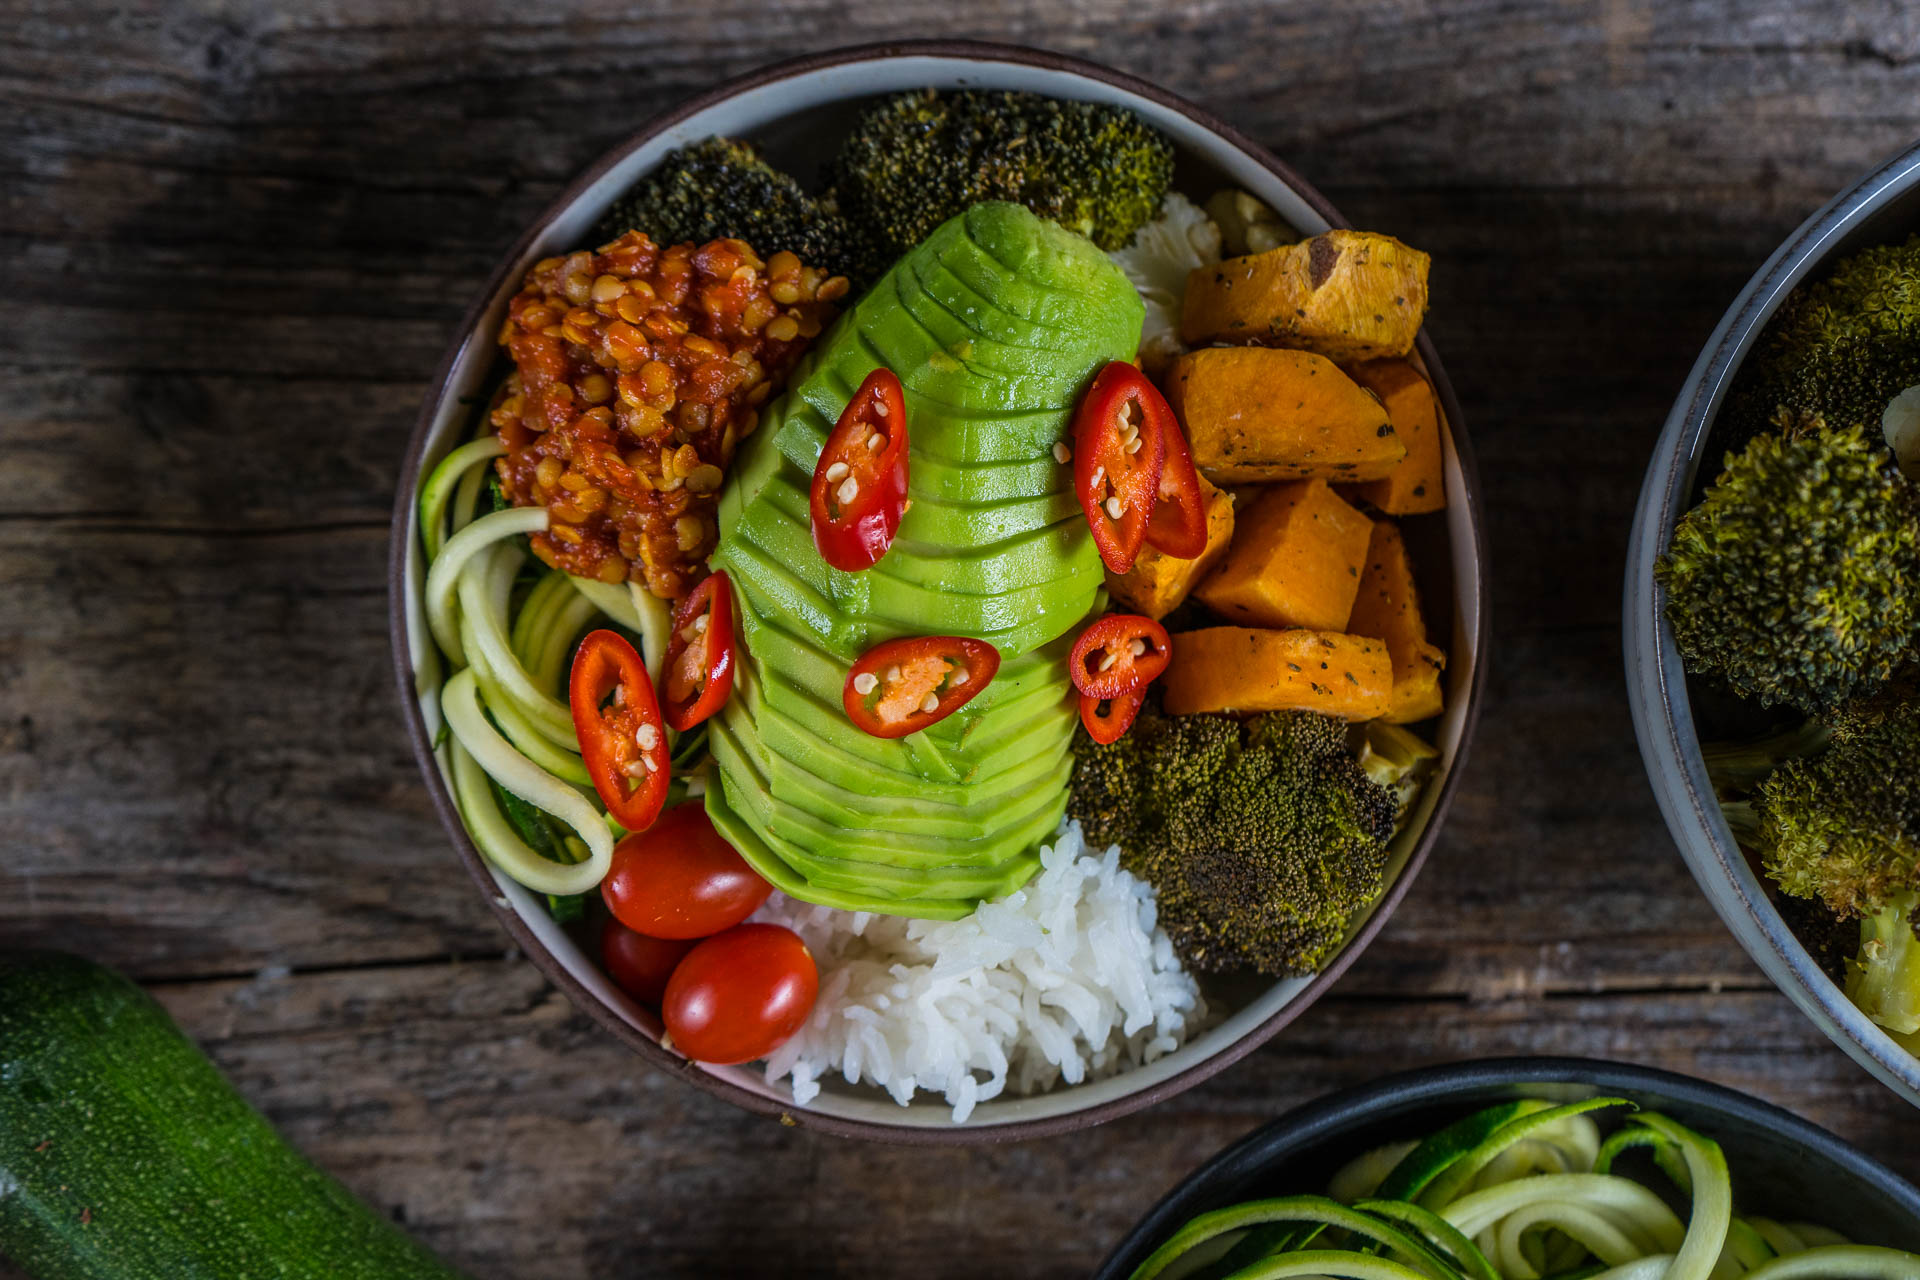 Meal Prep - Rainbow Bowl vegan Mrs Flury